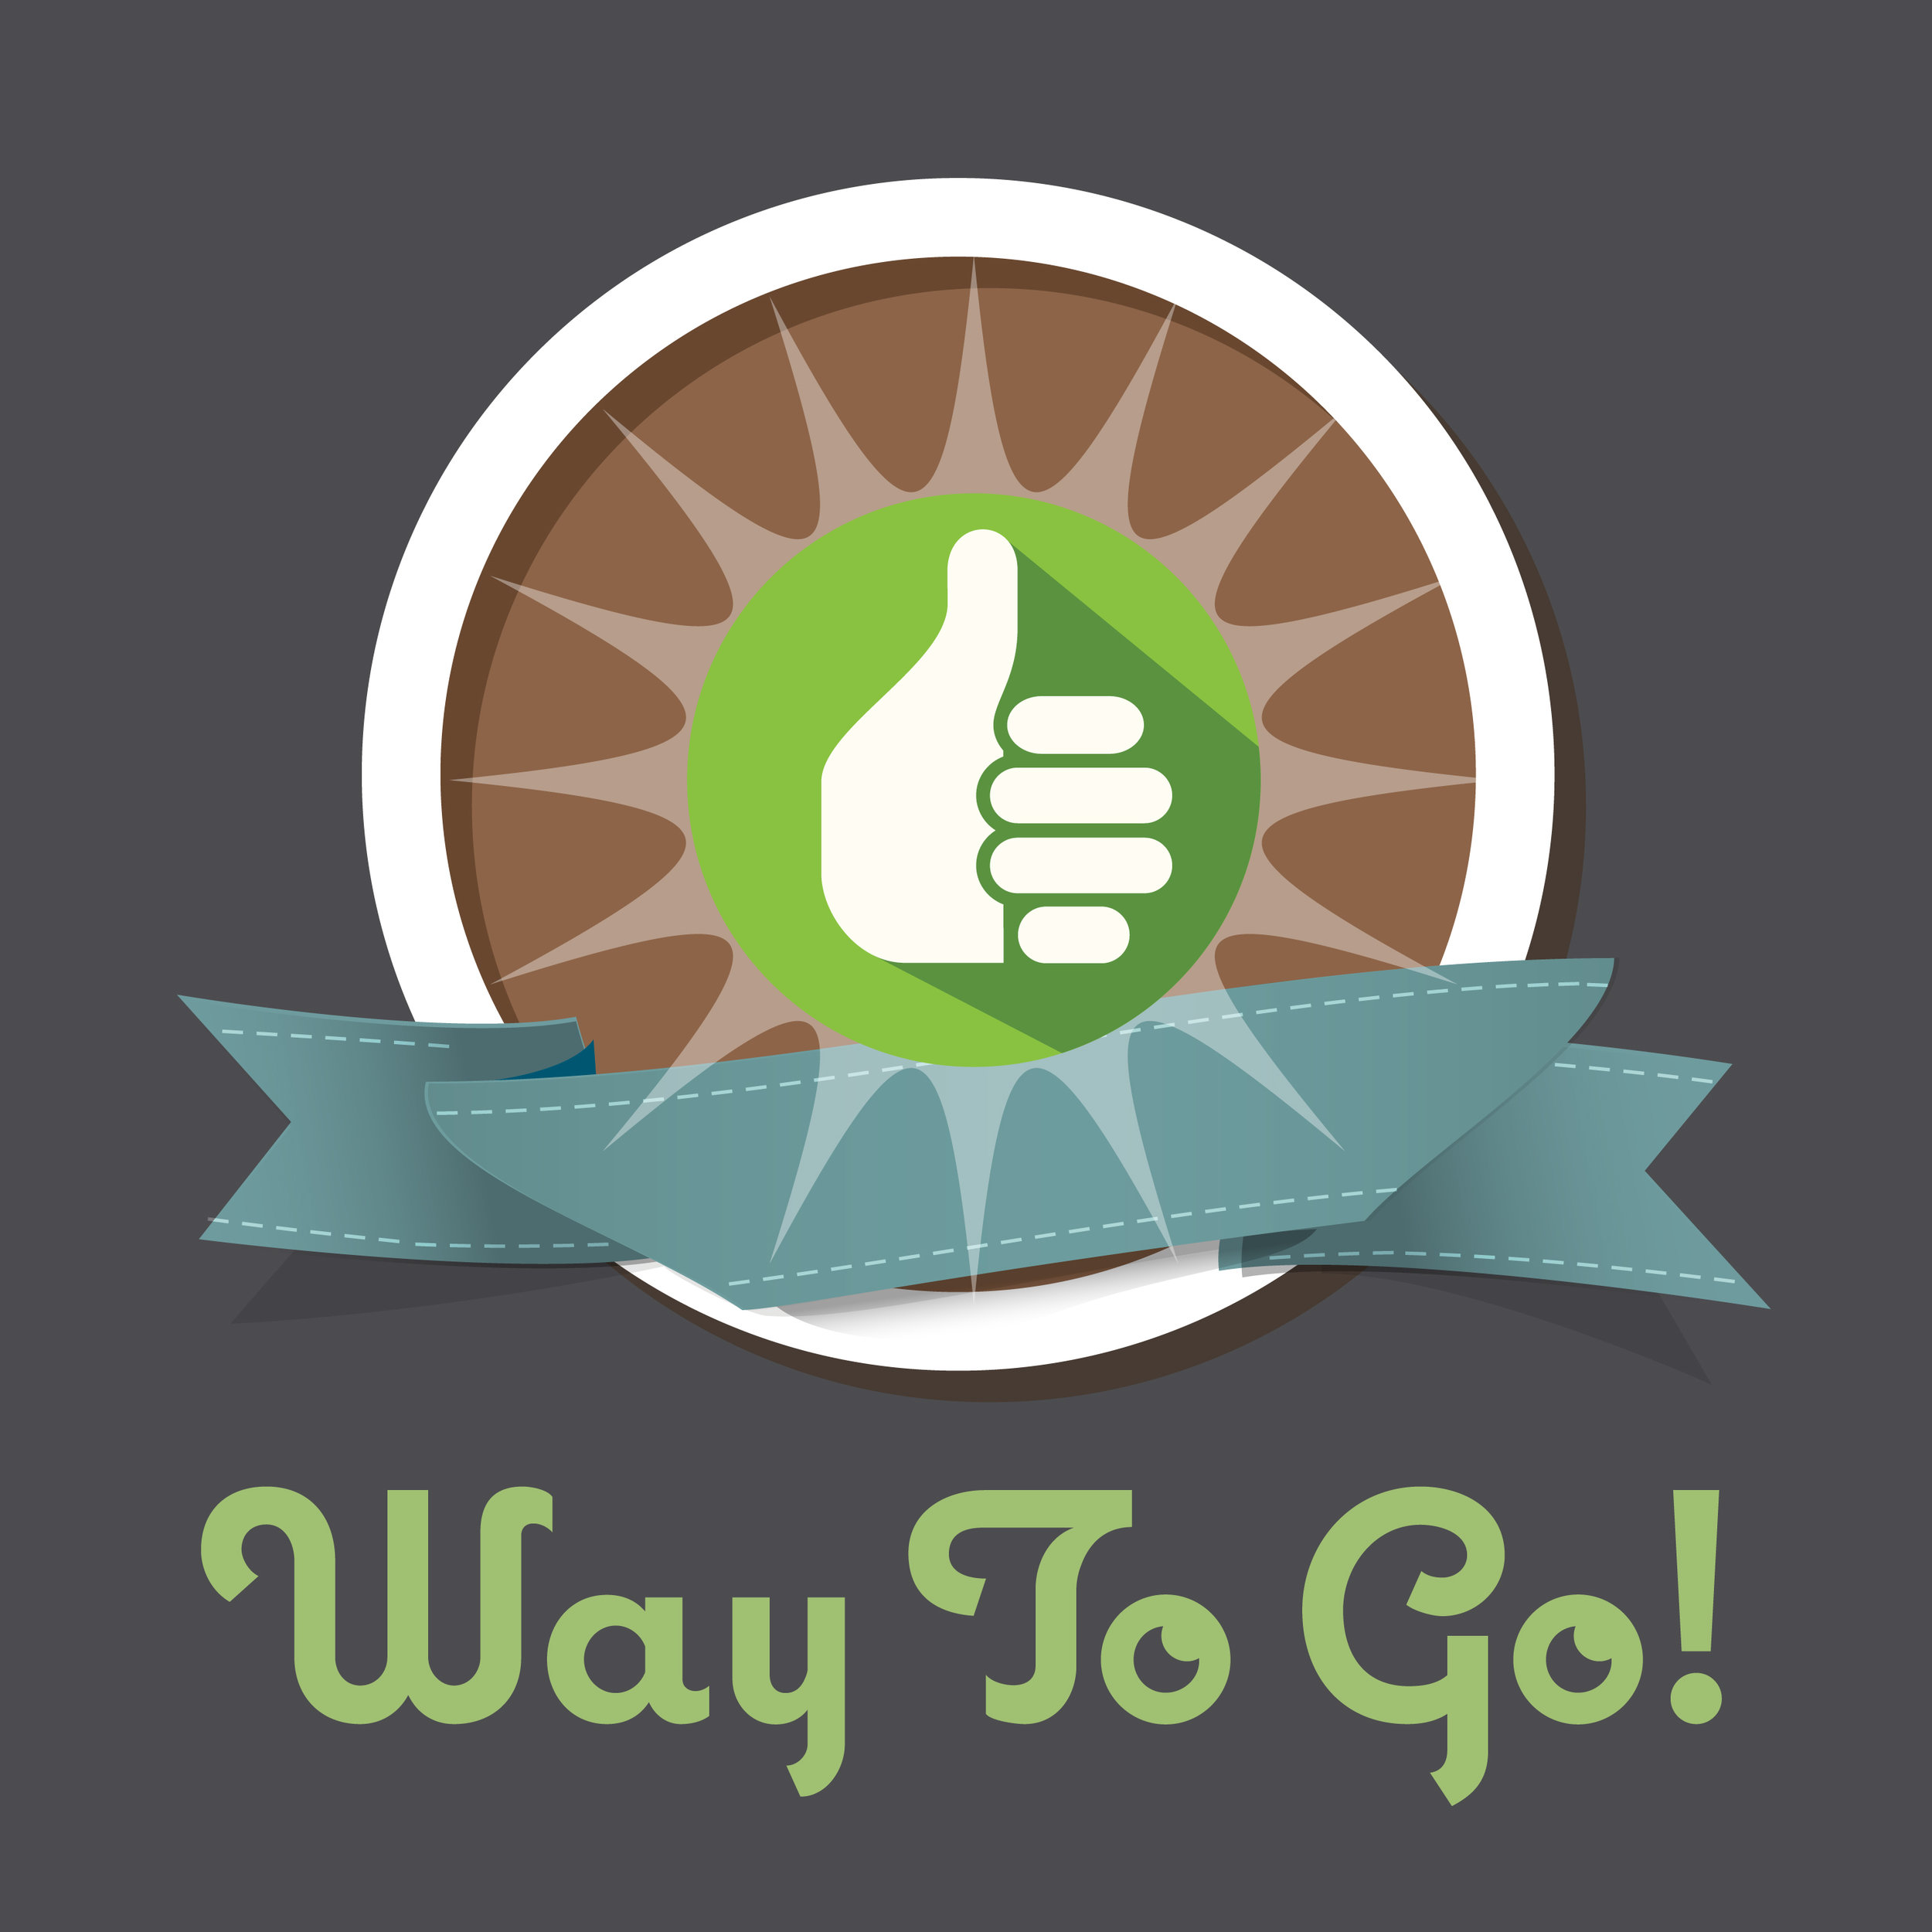 Way to Go! - Congratulations to the following staff members for going above and beyond!Suzie Canner, Lesley Chodkowski, Joe Eakman, Jerry Ehemann, Stephanie Fuller, Joe Leising, Jackie McMasters, Nancy Nolan, Jessica Slaven, Marlena Washington, Rex White, Mary Wilham, Dani Yates